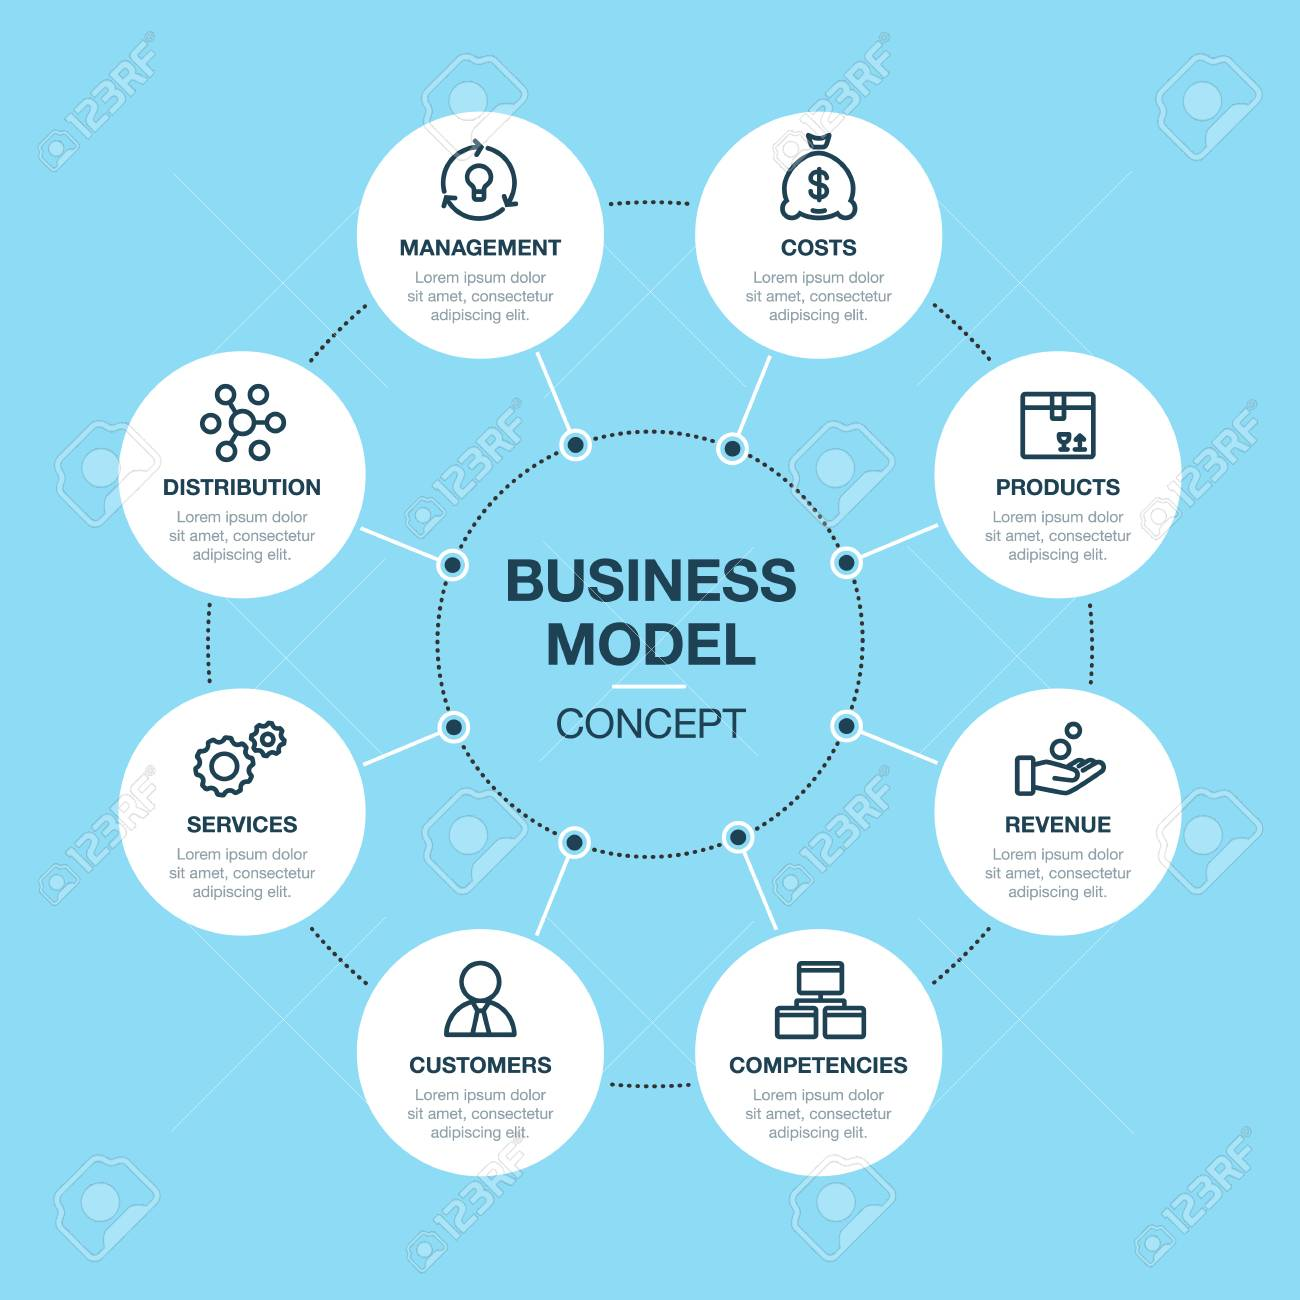 Simple Vector illustration for business model template isolated